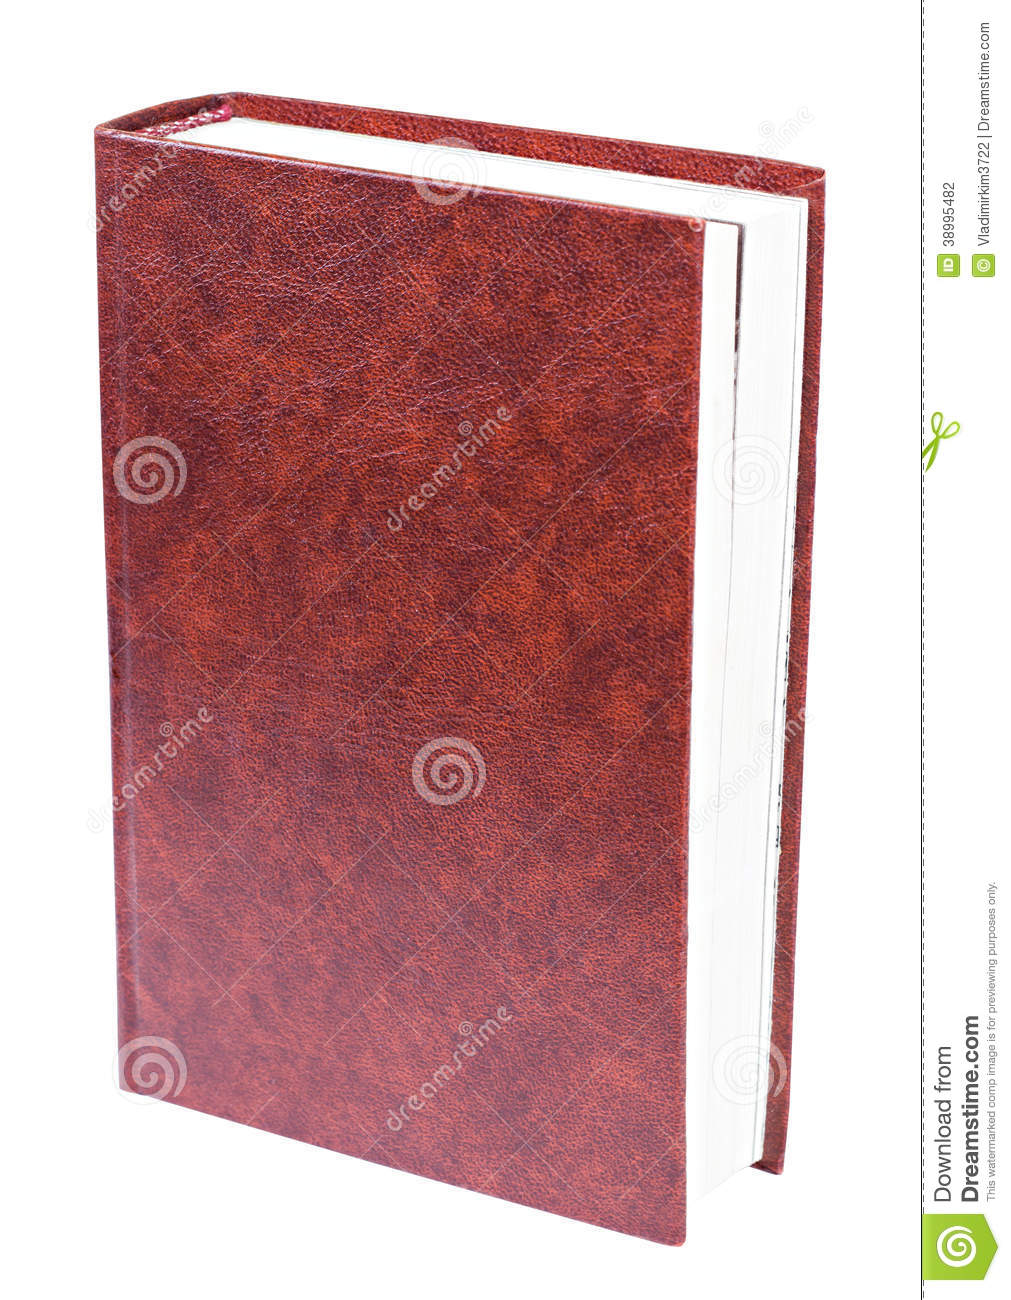 Book Cover Design Isolated Over Colorful Background : Maroon book standing isolated stock photo image